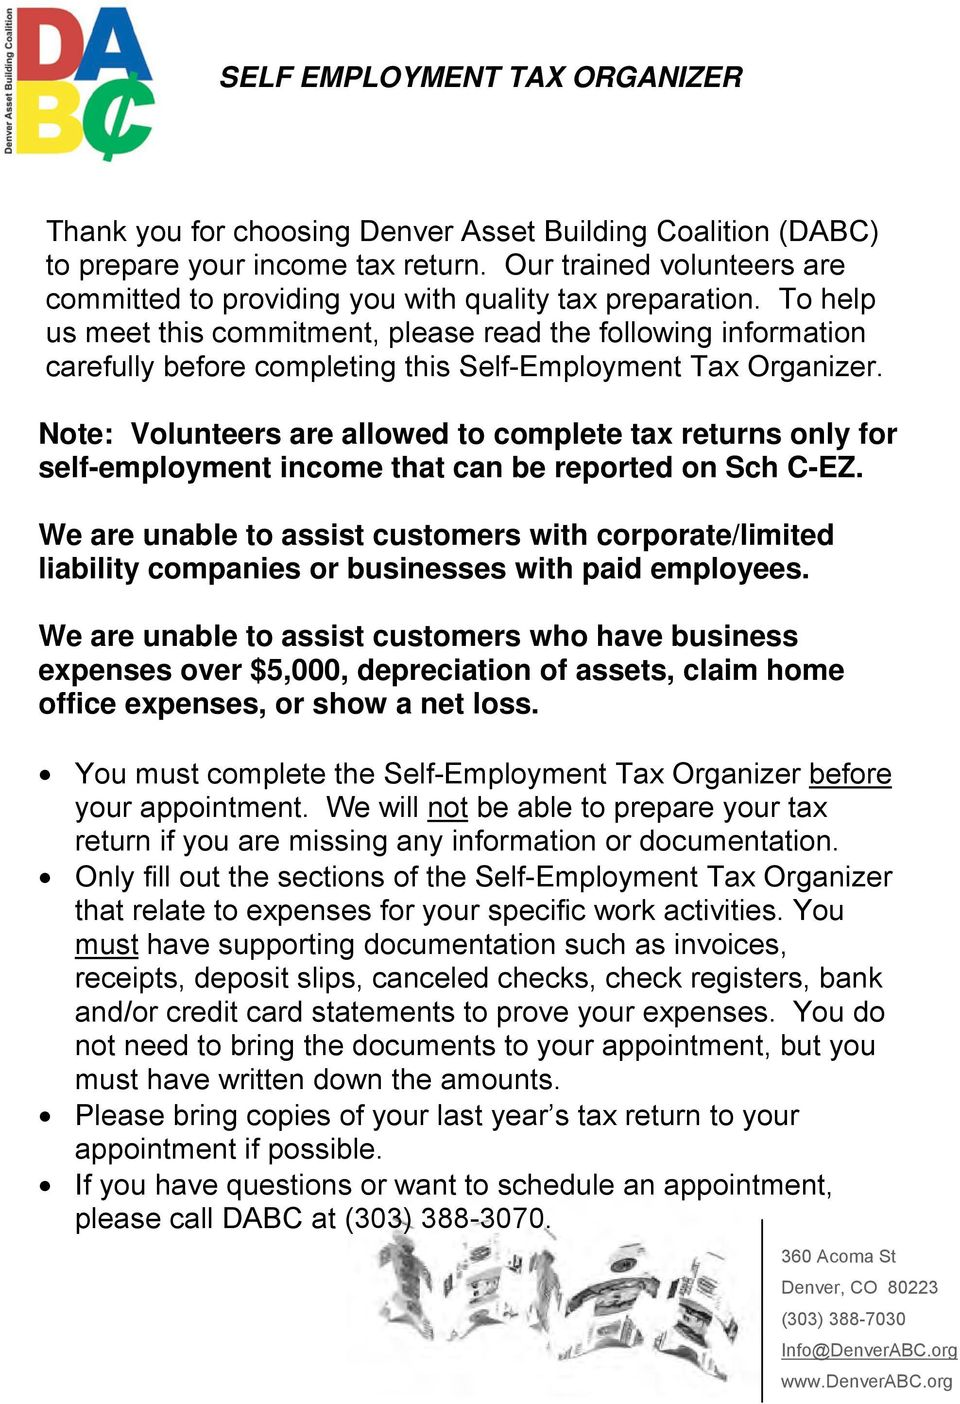 Note: Volunteers are allowed to complete tax returns only for self-employment income that can be reported on Sch C-EZ.